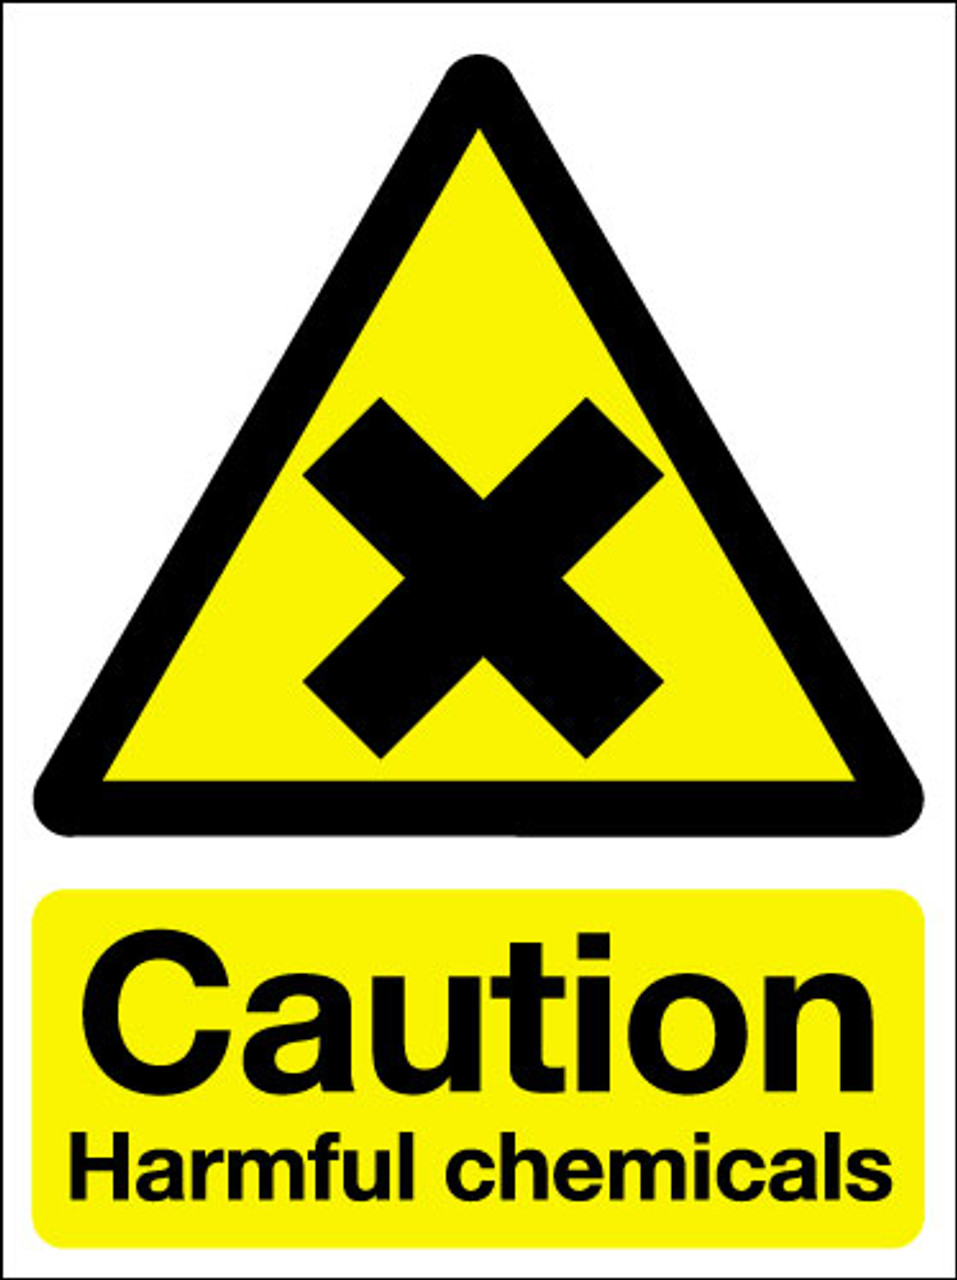 Caution harmful chemicals signs